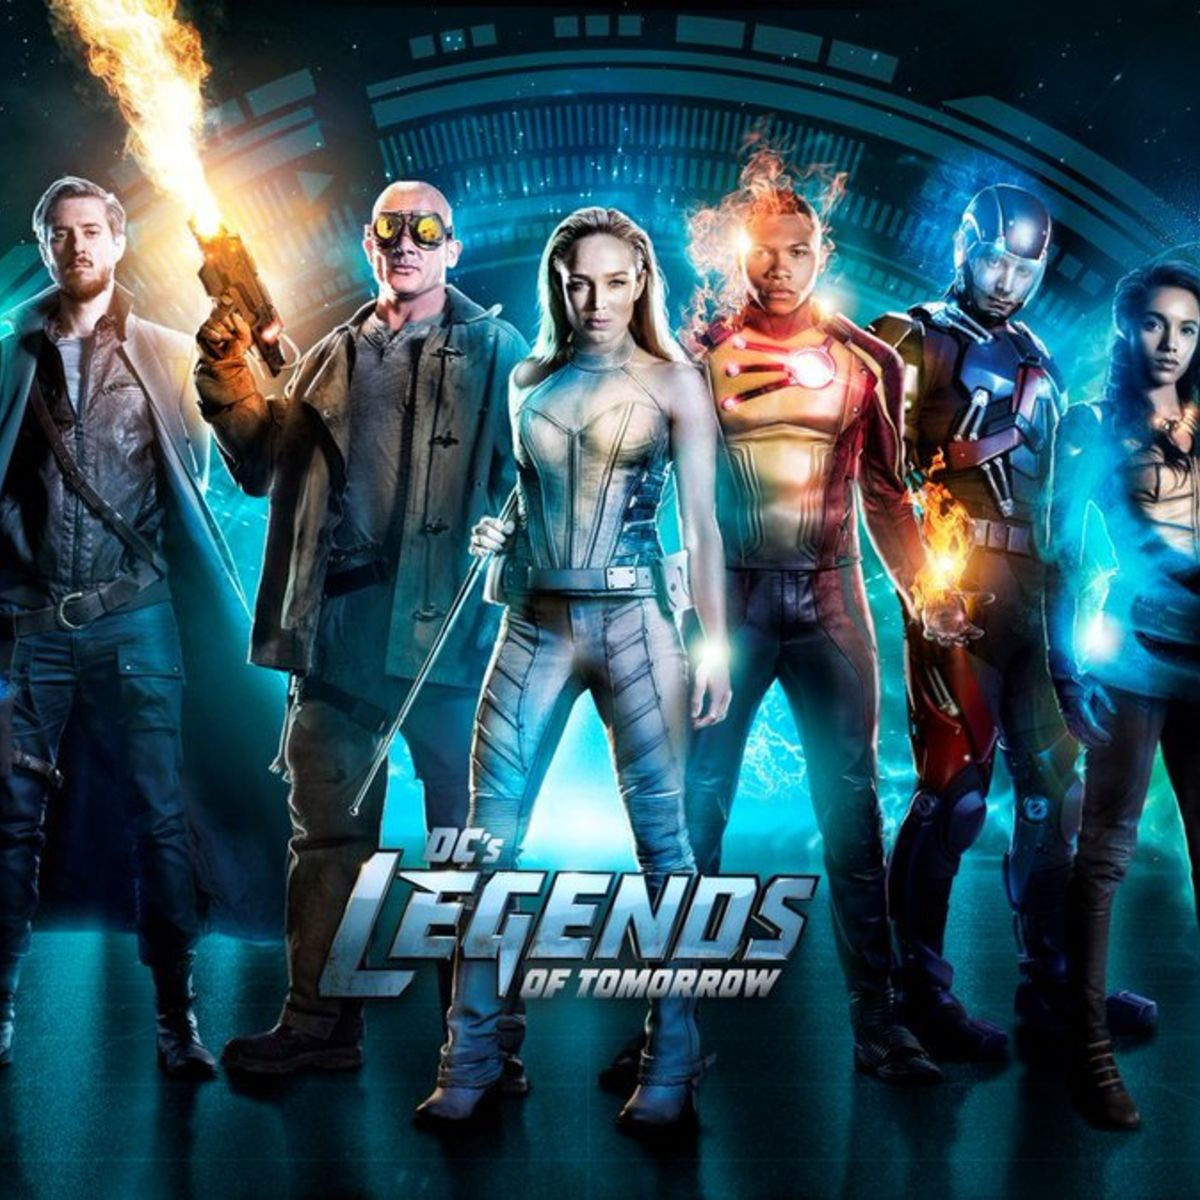 legends-of-tomorrow-season-3-release-date-team.jpg